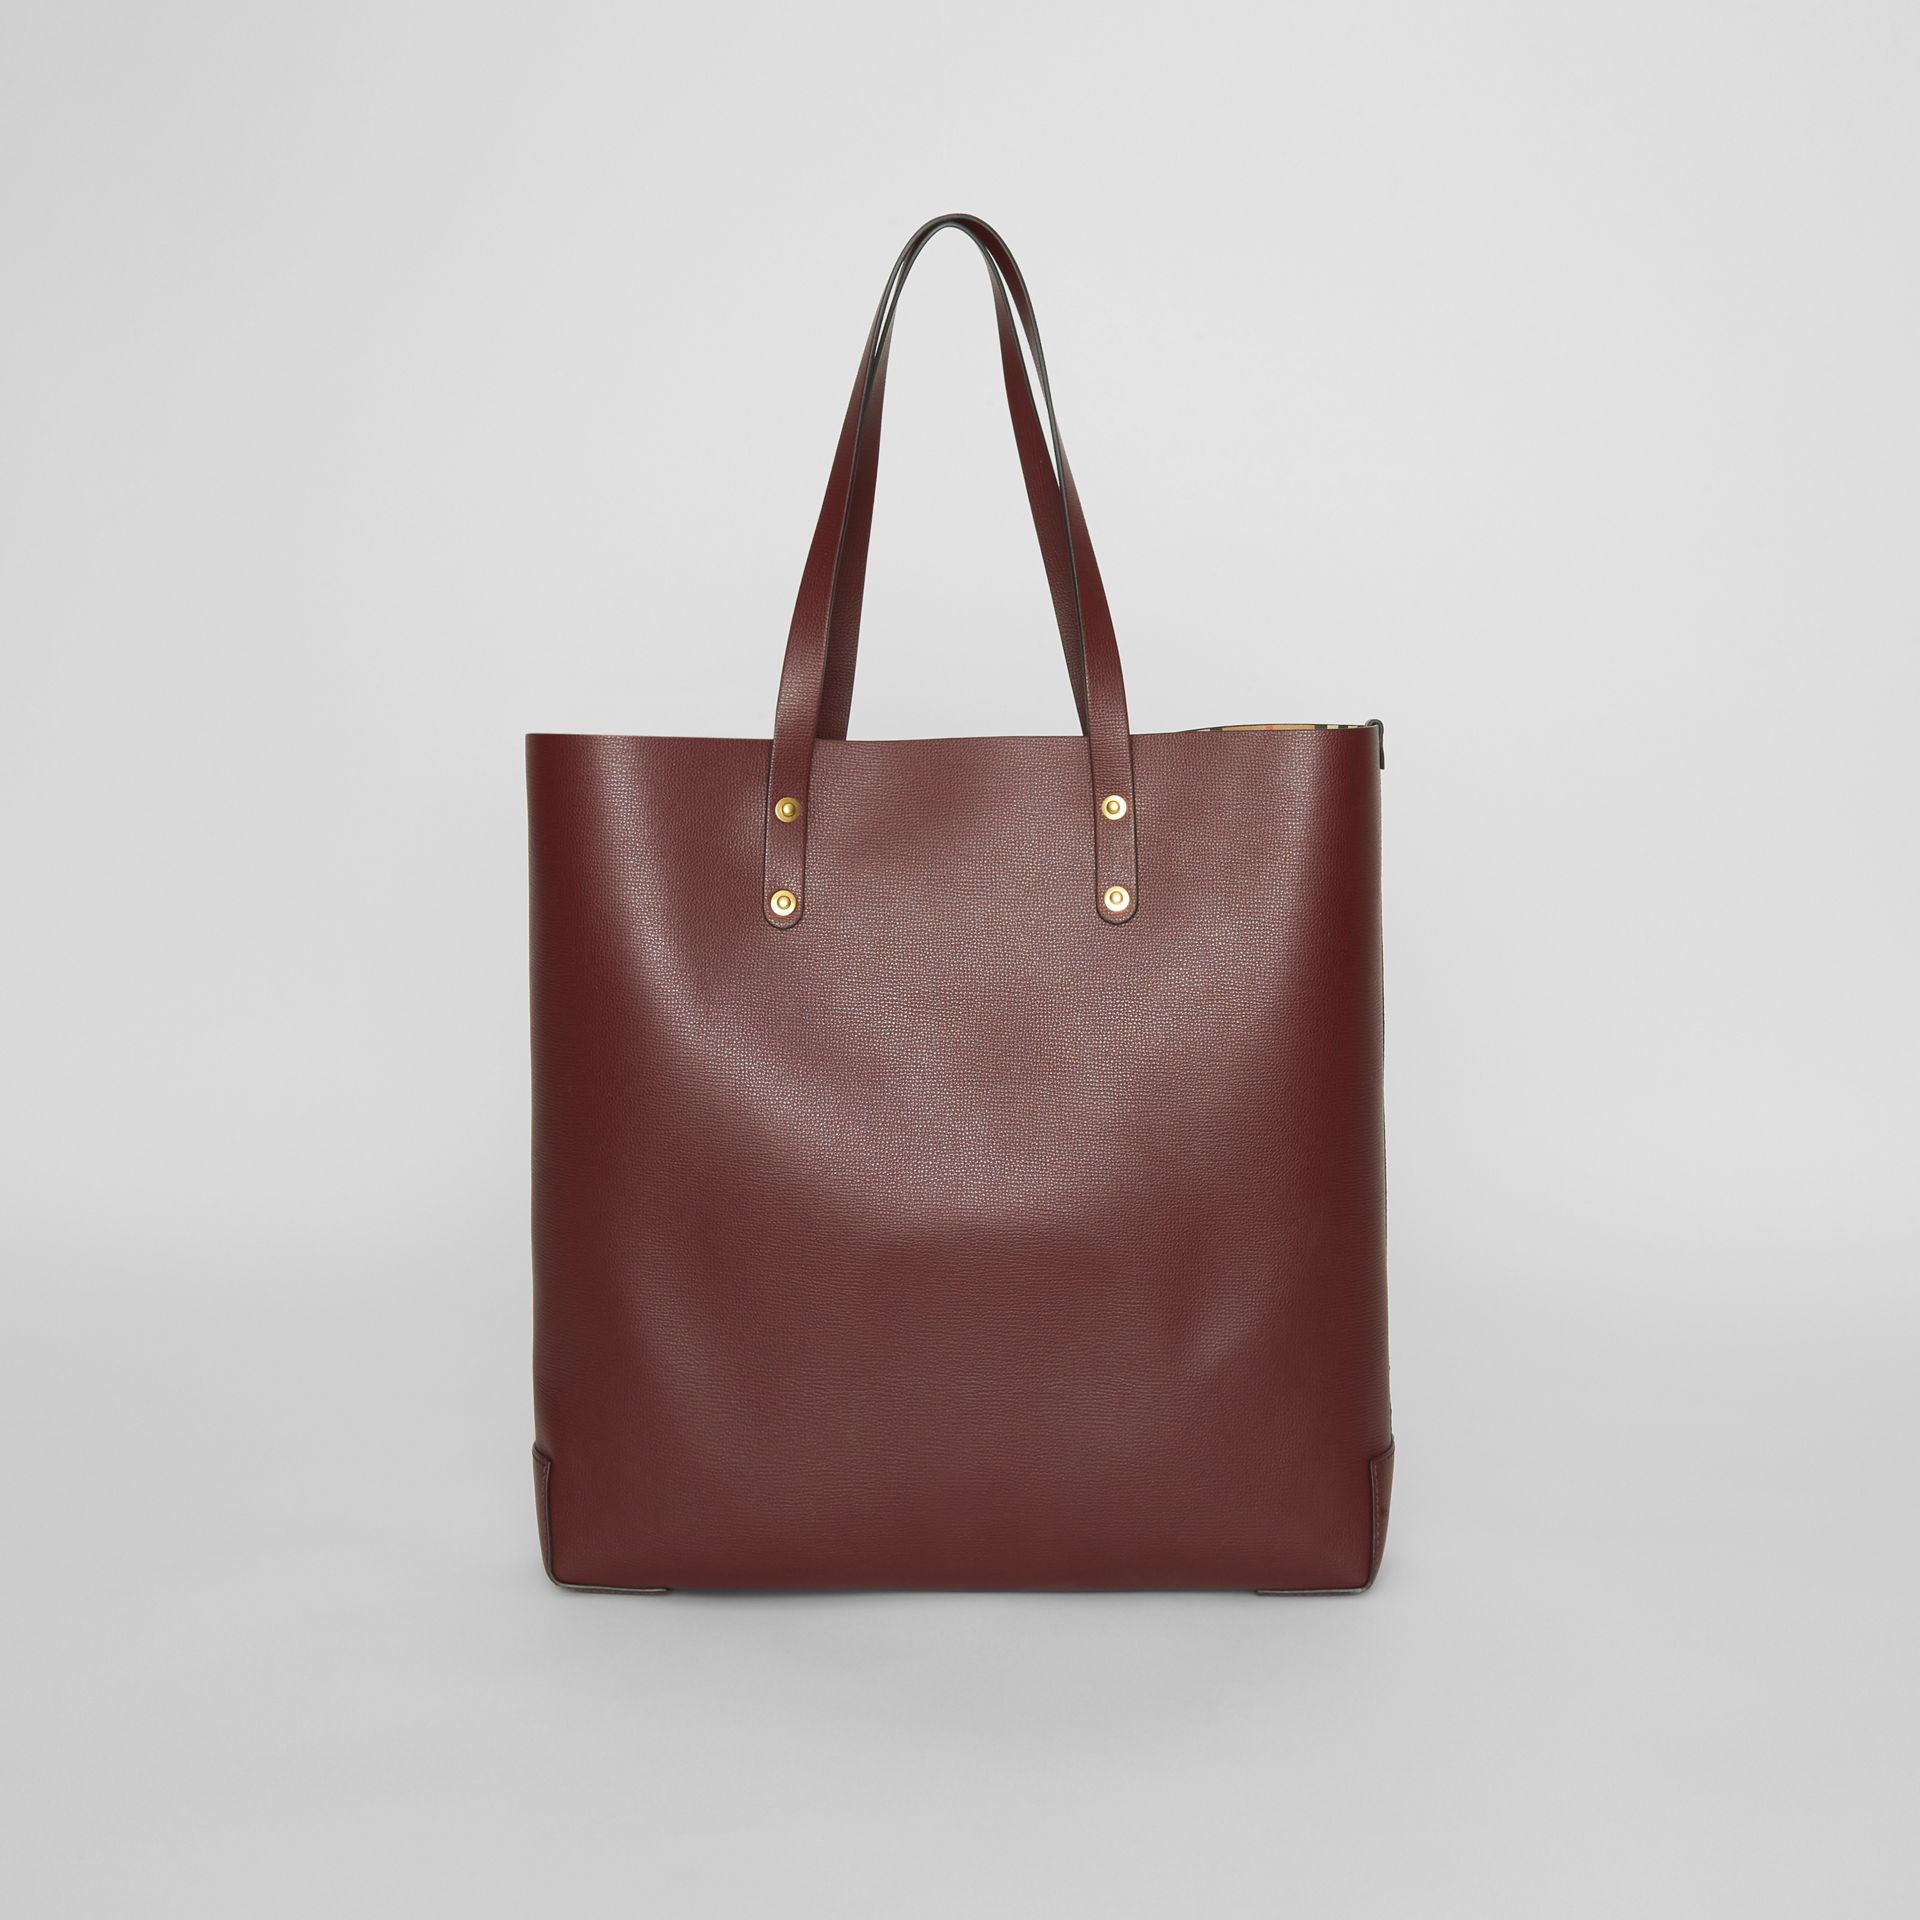 Grand sac cabas en cuir avec écusson (Bourgogne) | Burberry Canada - photo de la galerie 7